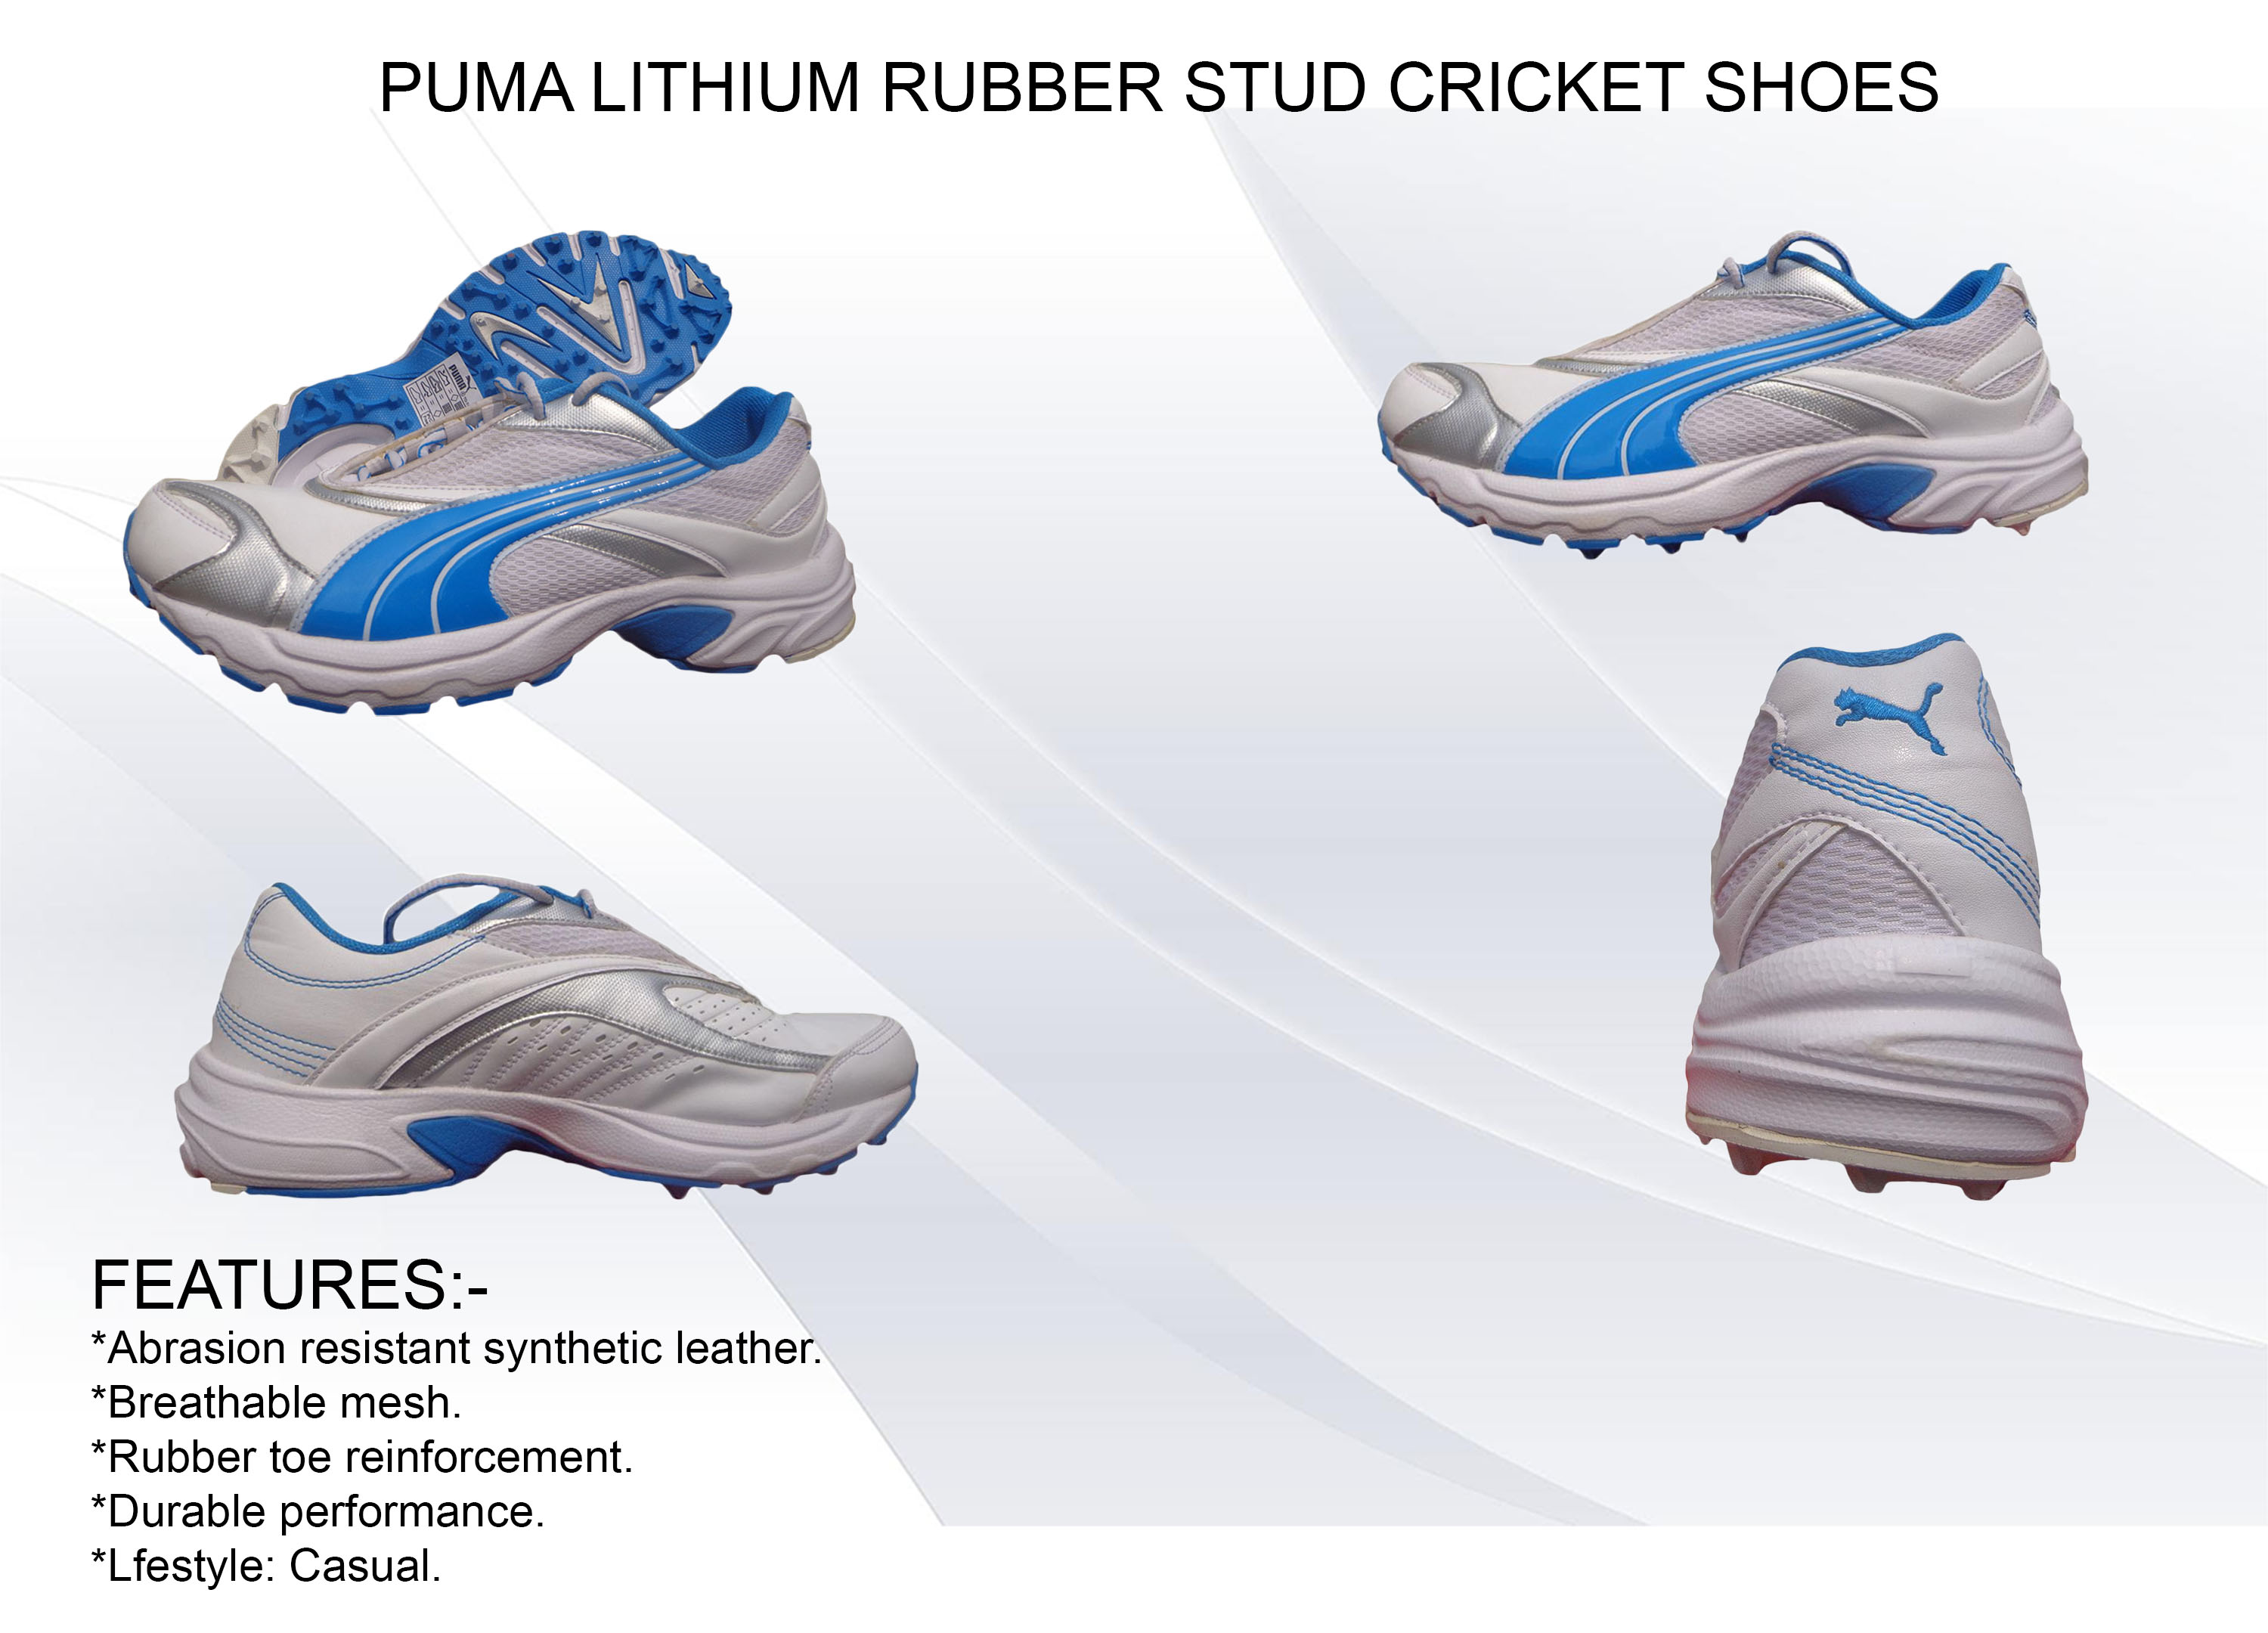 PUMA LITHIUM RUBBER STUD CRICKET SHOES